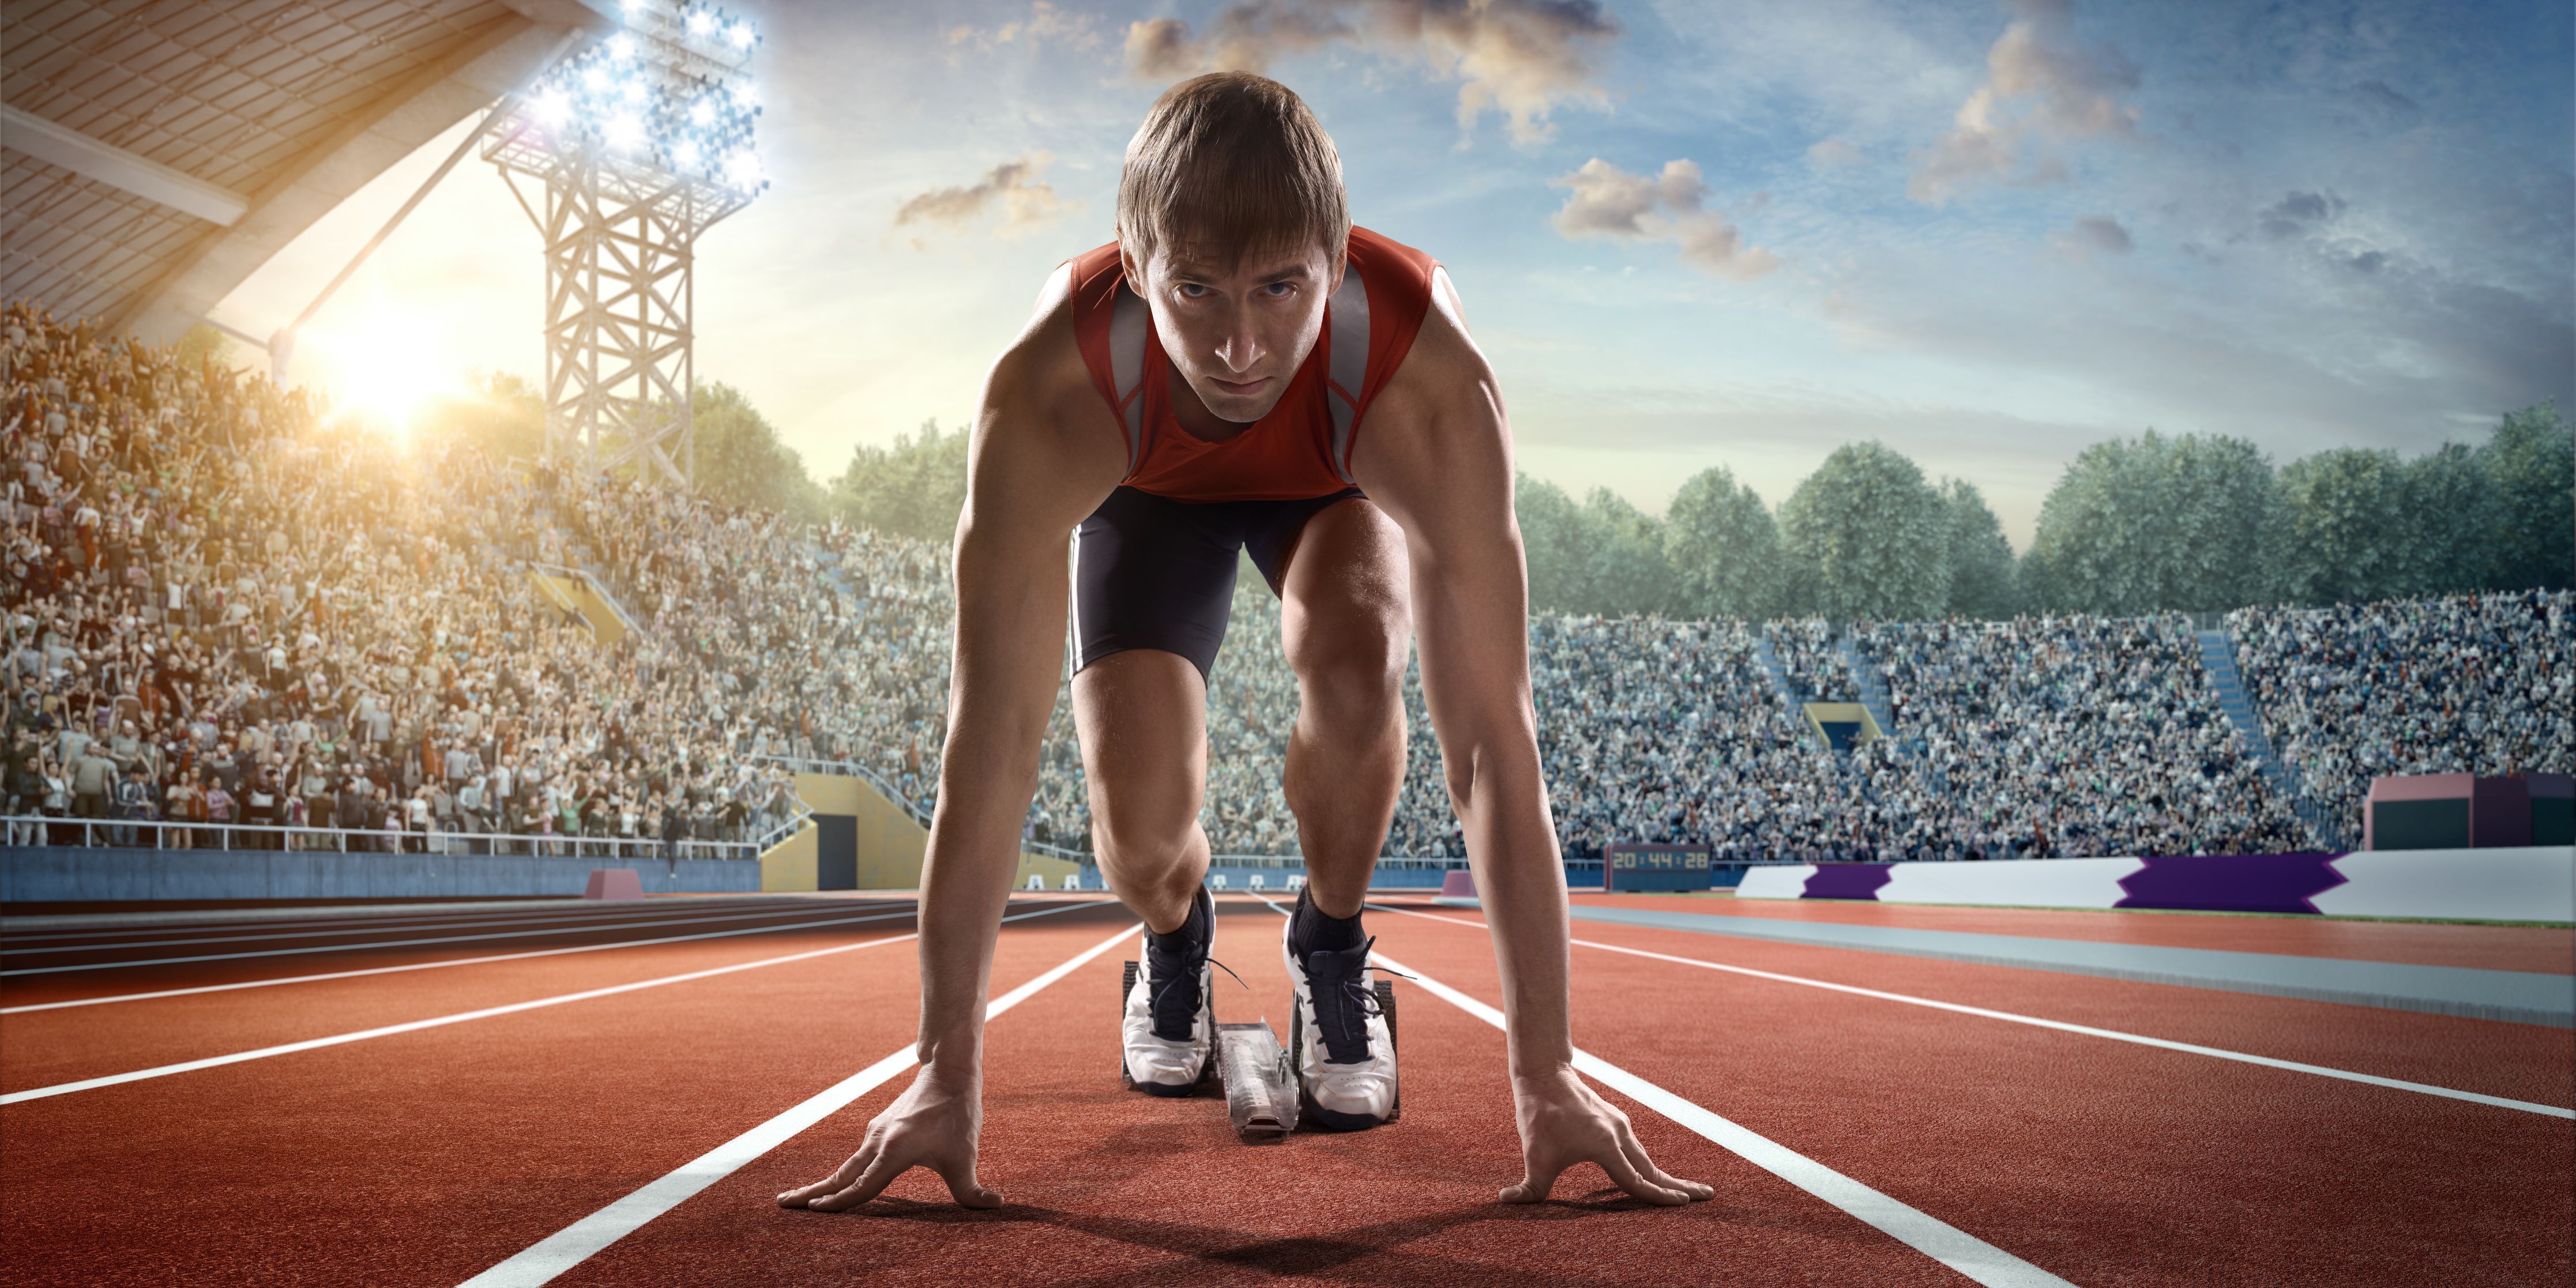 A man with a strong start to a race, just like your essay should have a strong start.